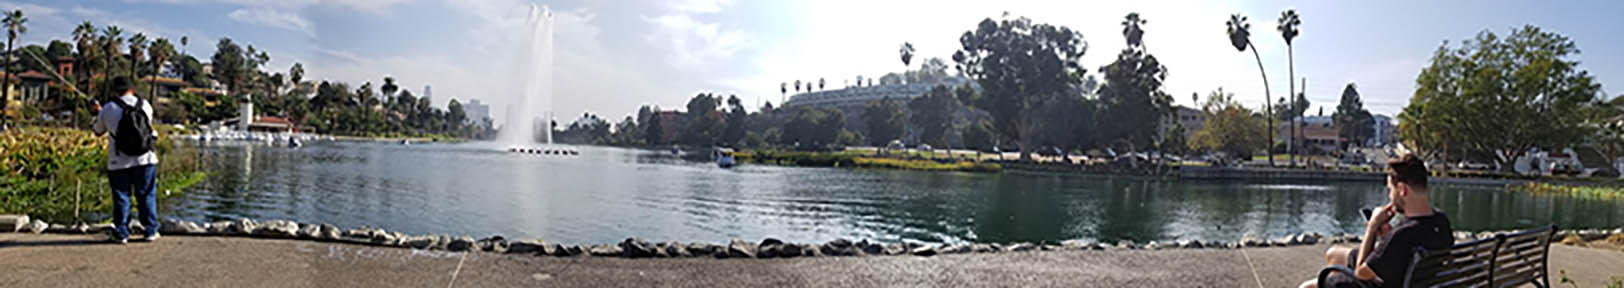 Echo Park, Photo by Richard Loranger